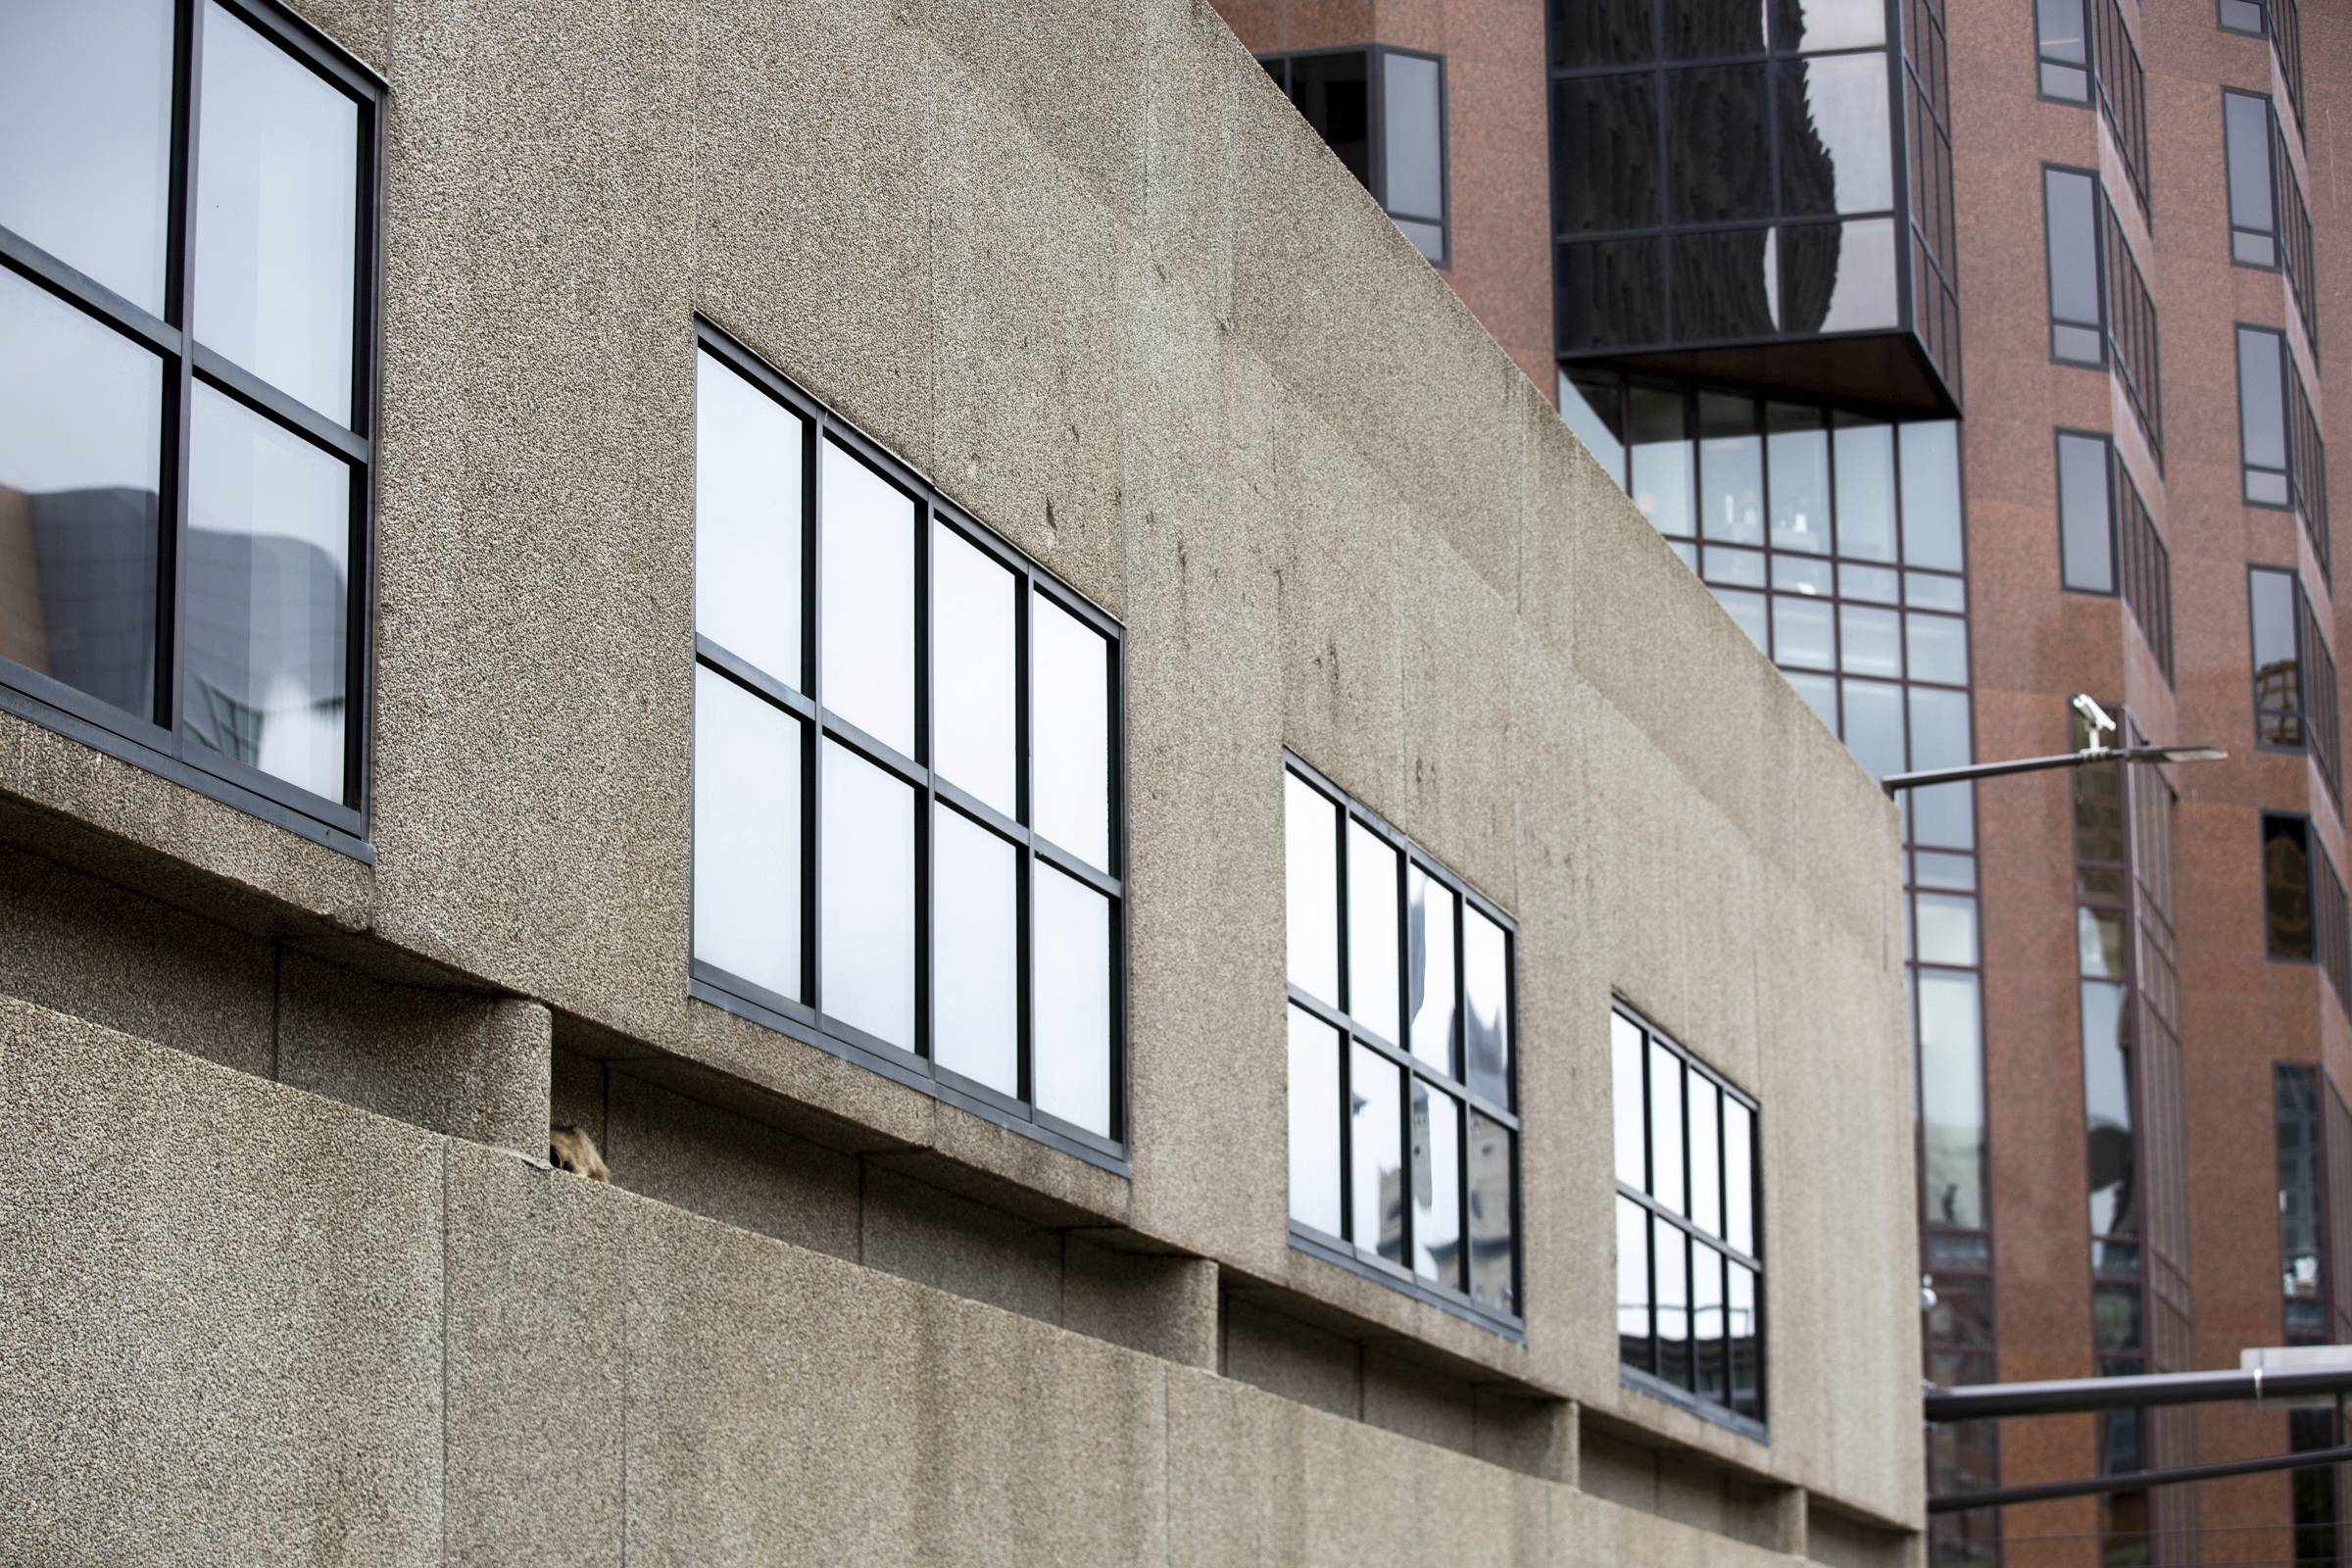 A raccoon sleeps on a ledge on the side of the Town Square building in St. Paul.